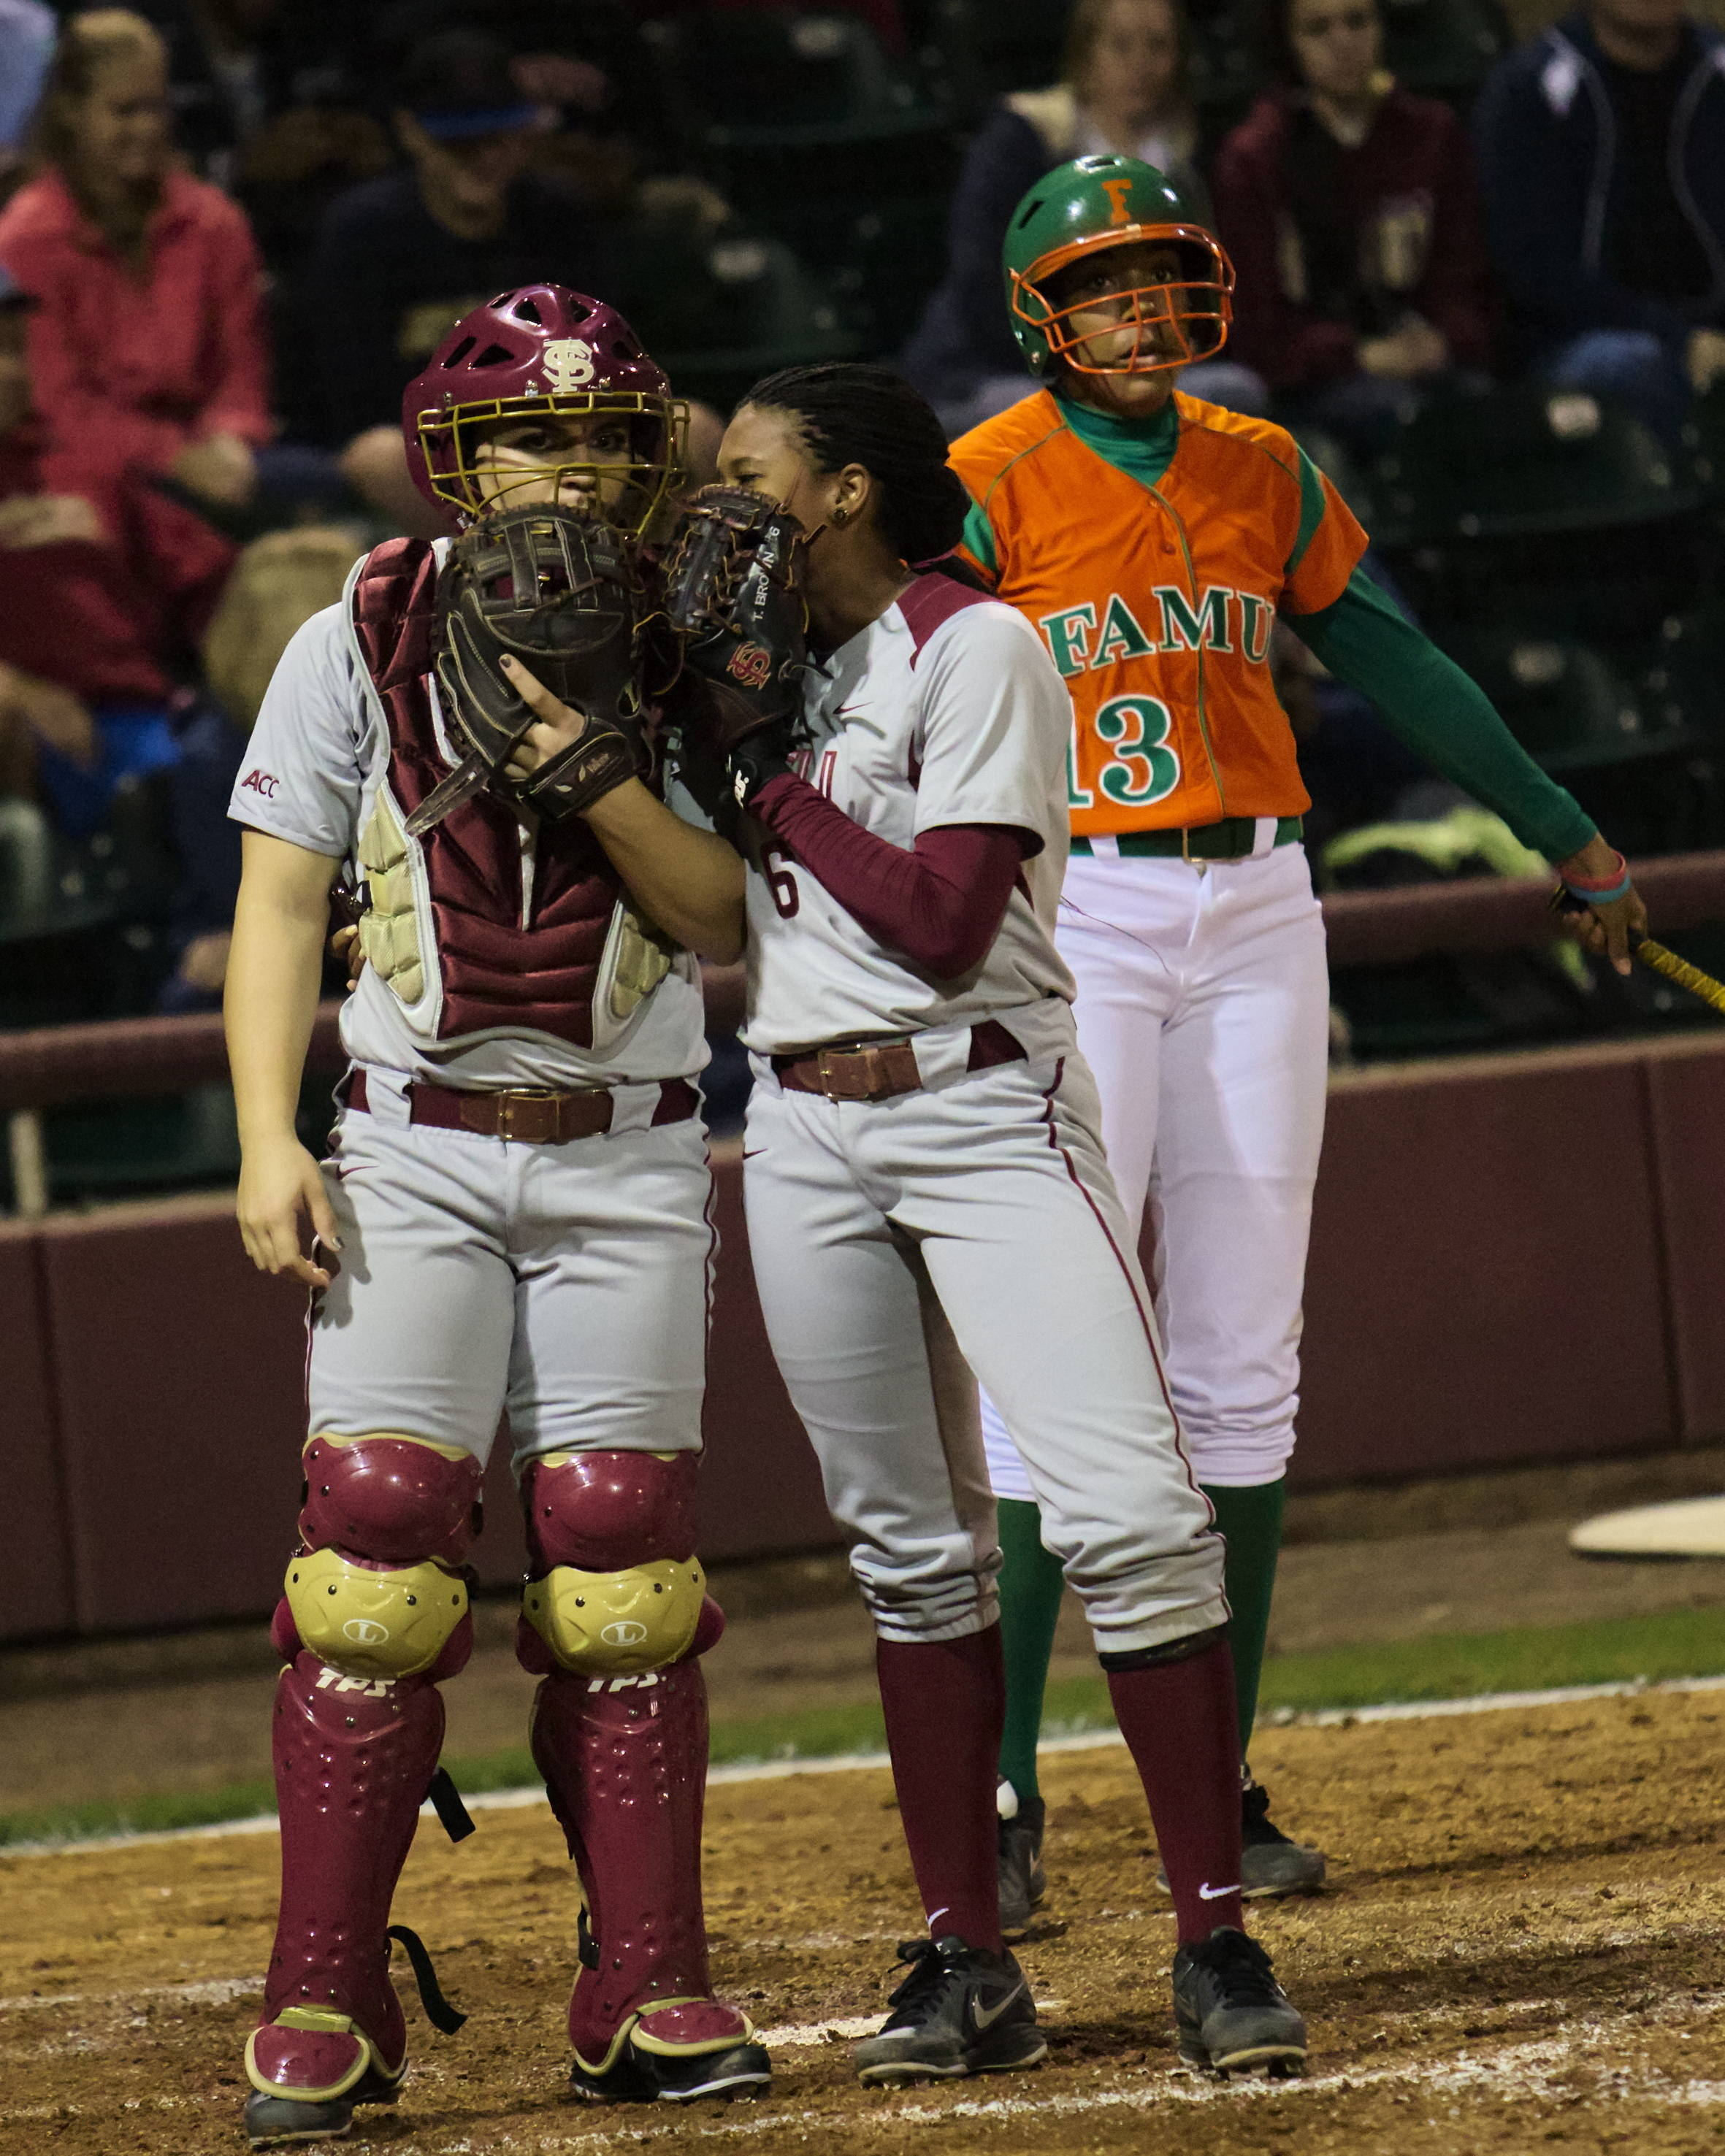 Celeste Gomez (00) and Tiffani Brown (6) working on defensive alignments, FSU vs FAMU, 02/08/13. (Photo by Steve Musco)